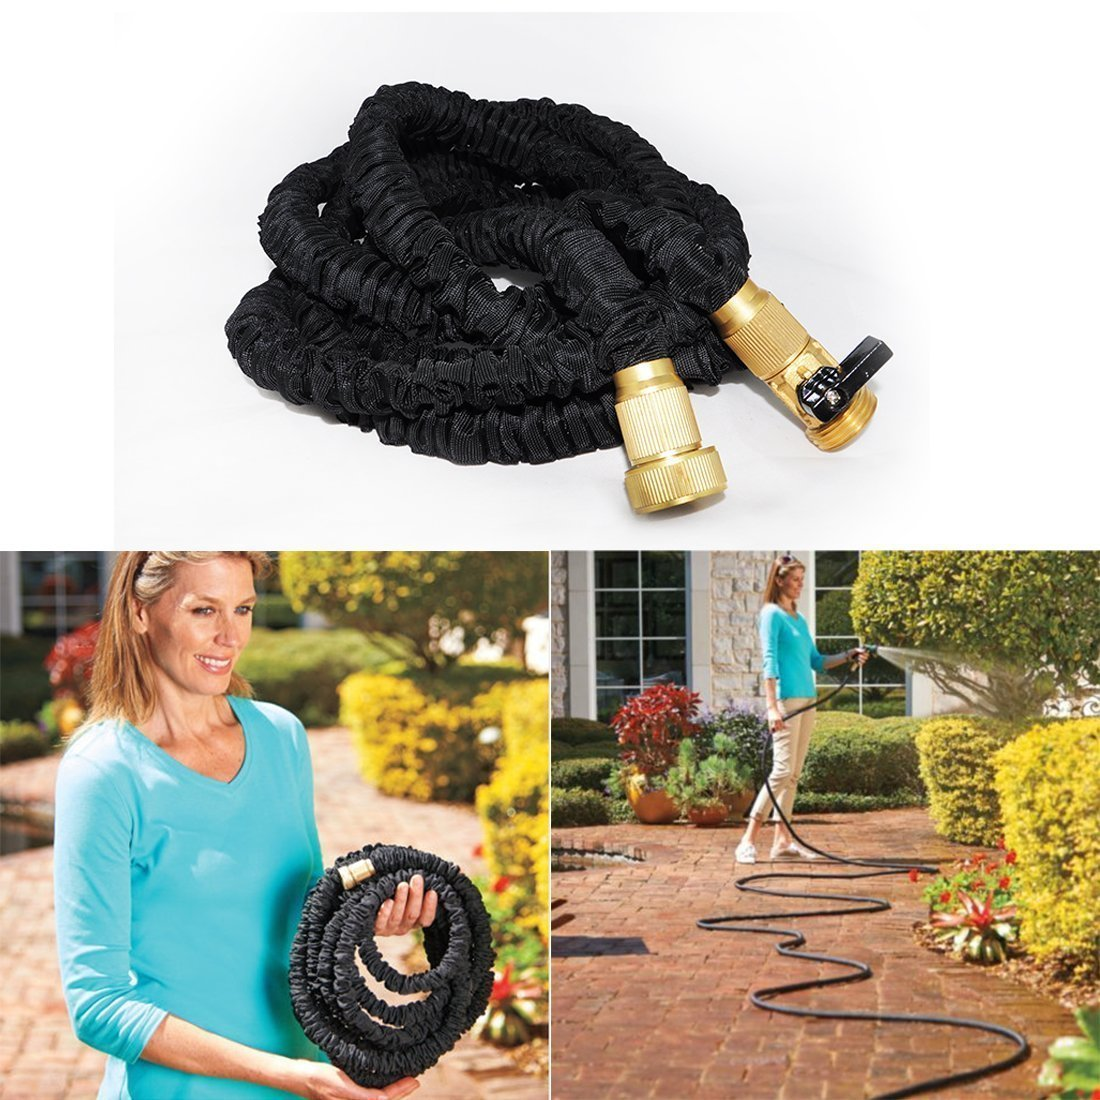 Felji 100 ft Expanding Garden Hose in Black with Solid Brass Fitting